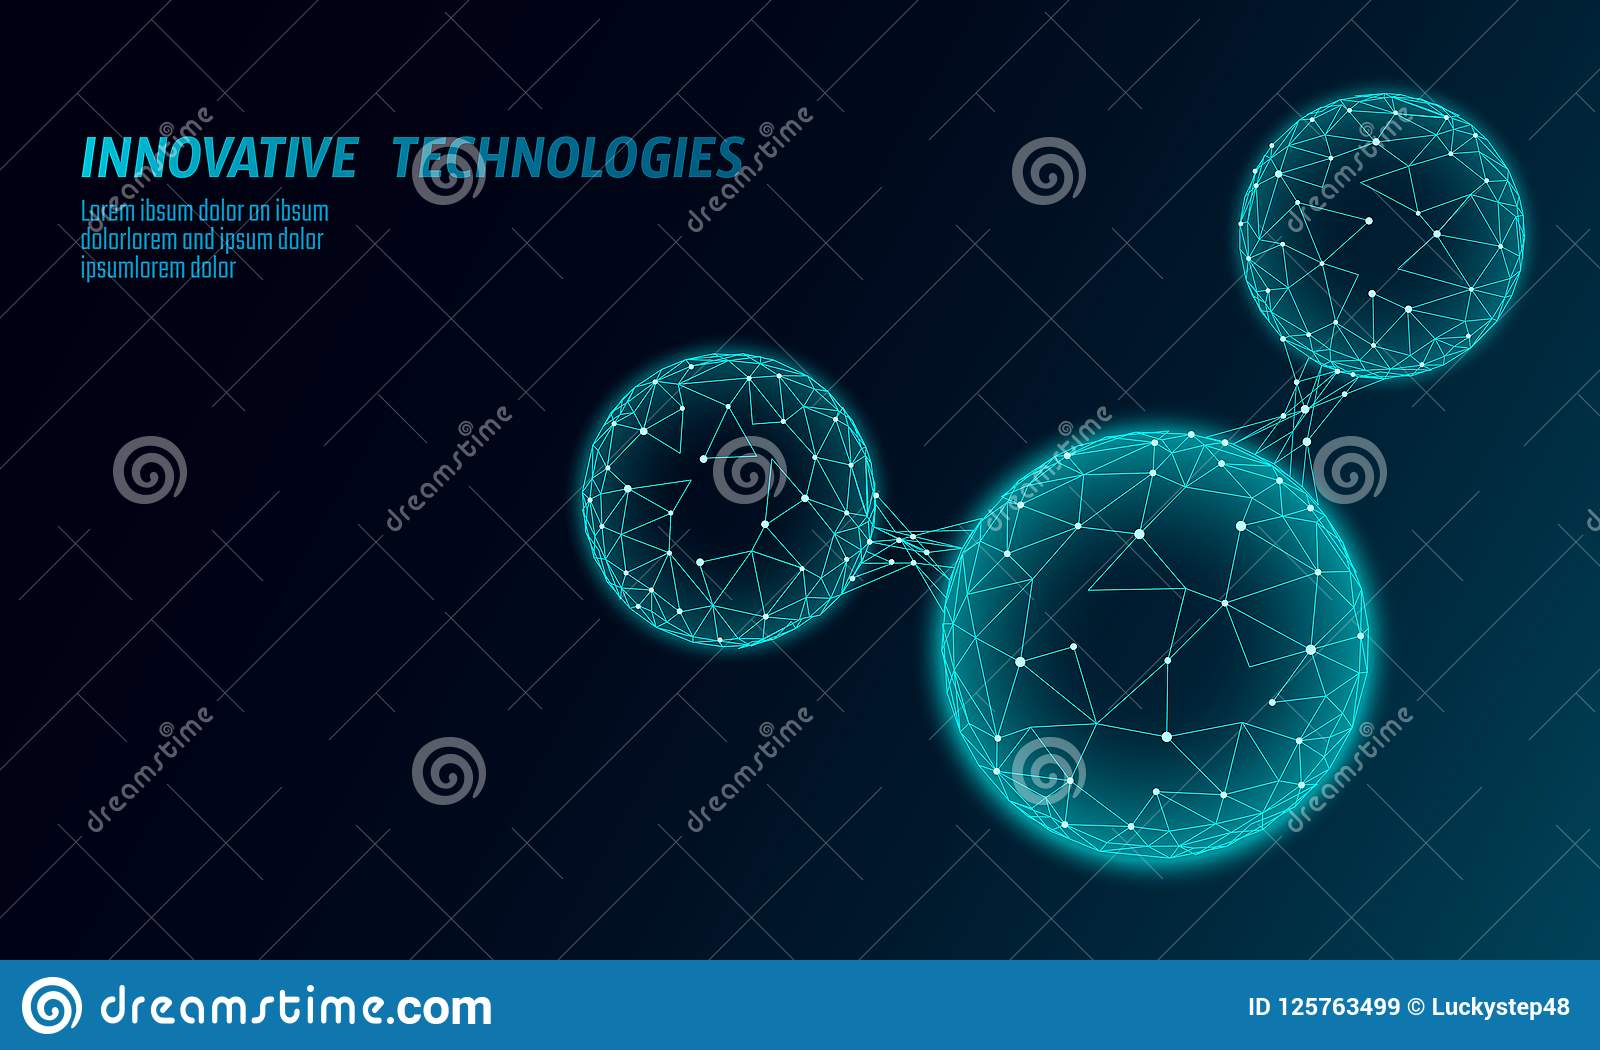 Low poly water molecule structure 3D render concept. Polygonal science research ecological technology art. Futuristic